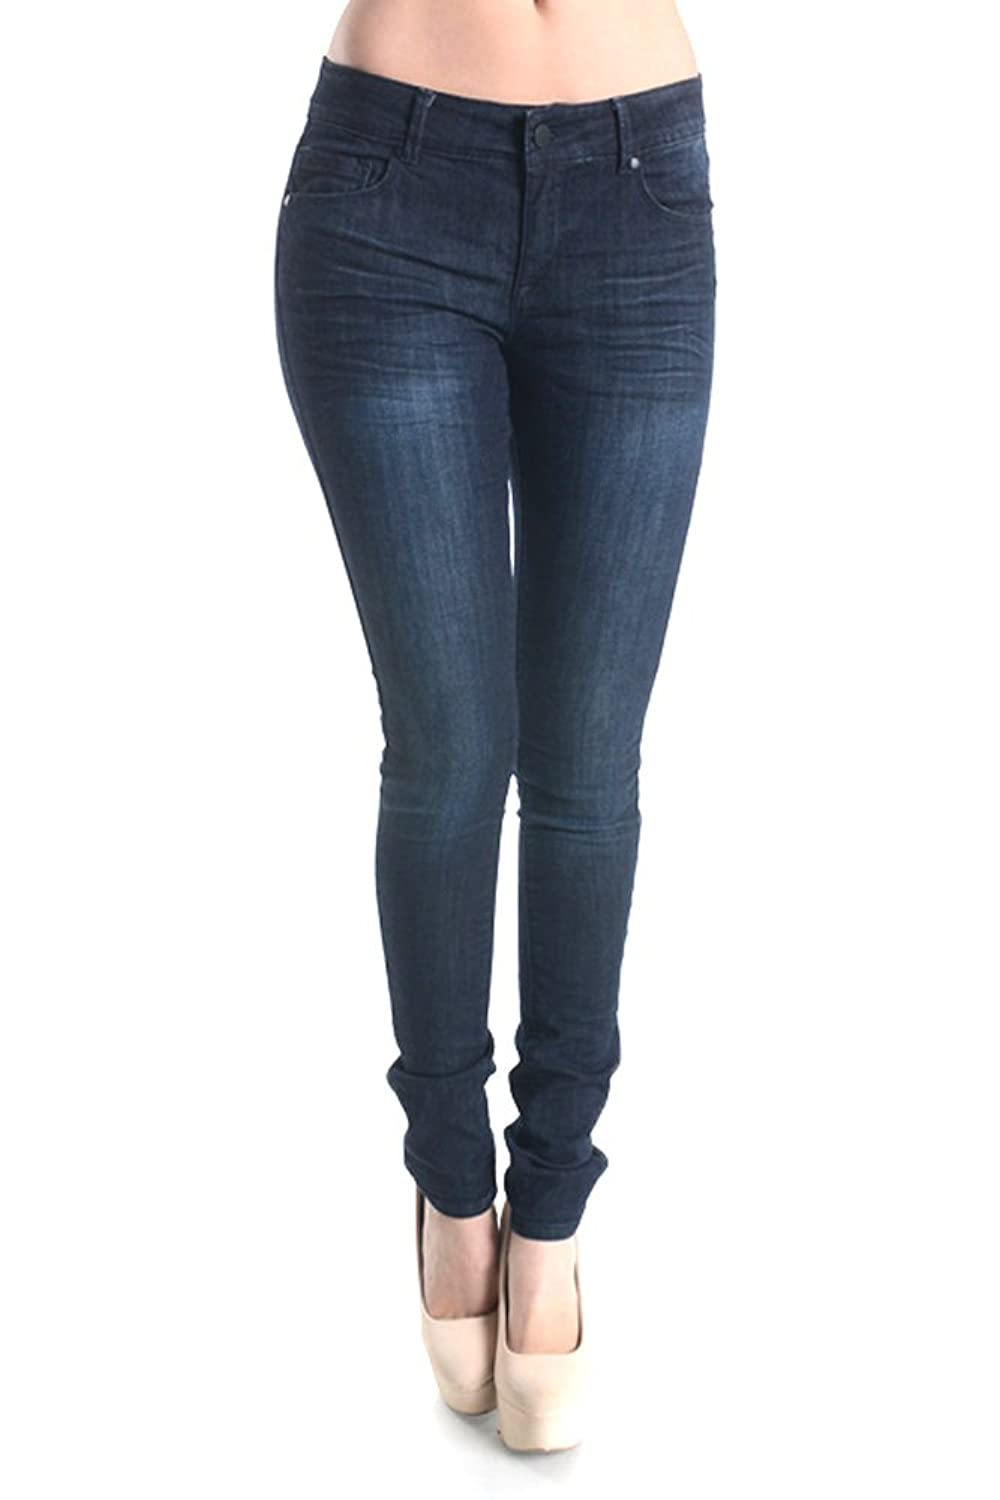 705d119cce cheap Nine Planet Women's Stretch Skinny Jean With 5 Pockets - url ...